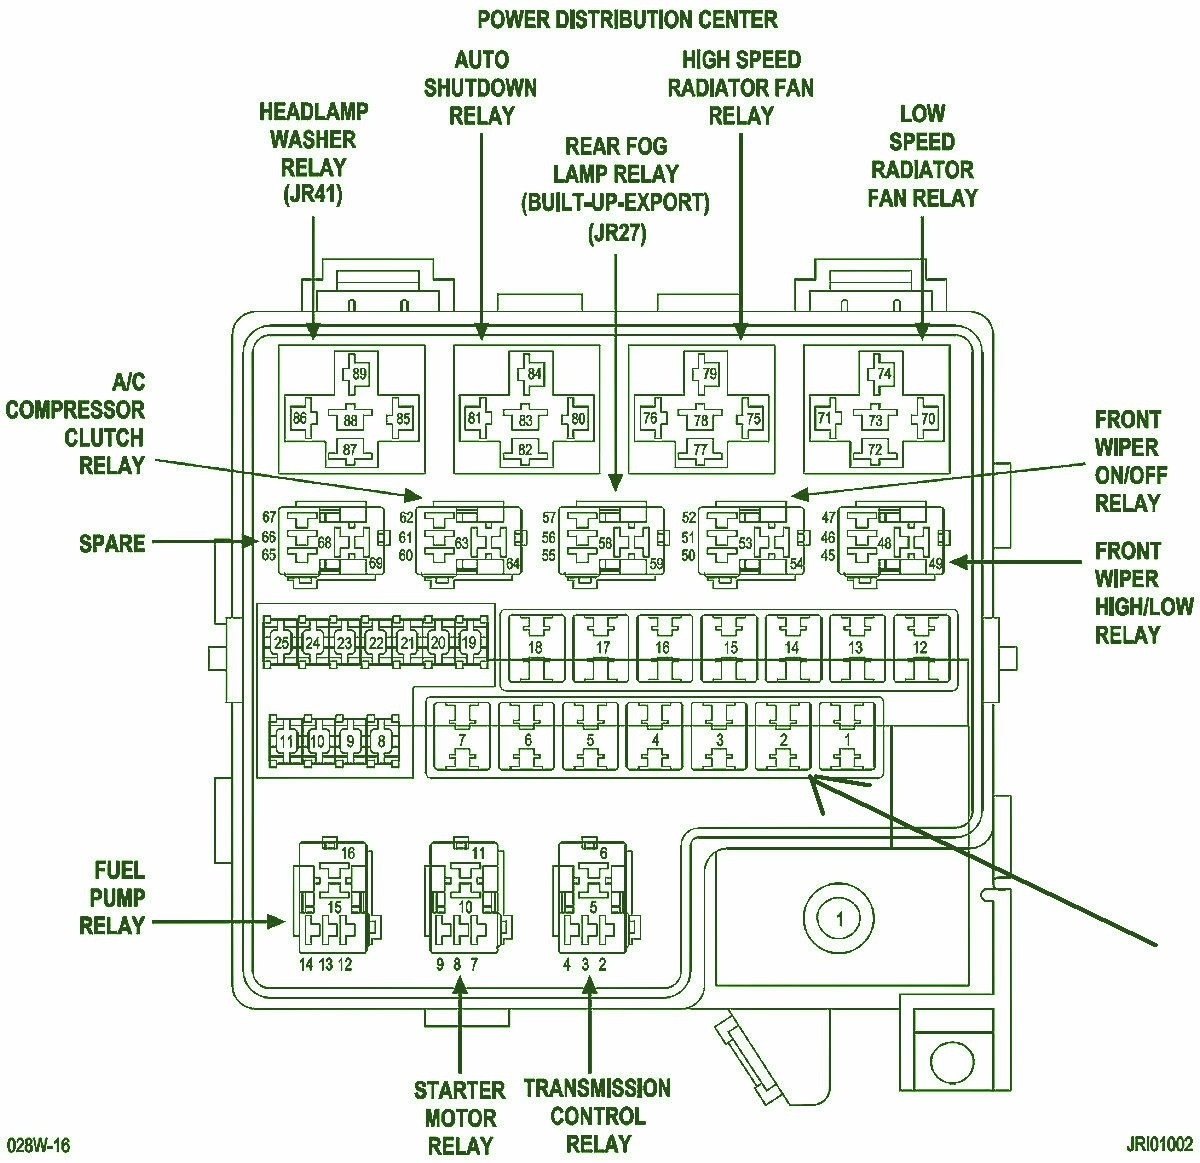 pic 7639269864944911098 1600x1200 2006 sebring fuse box diagram 2006 sebring horn fuse \u2022 free wiring 2004 colorado fuse box diagram at crackthecode.co